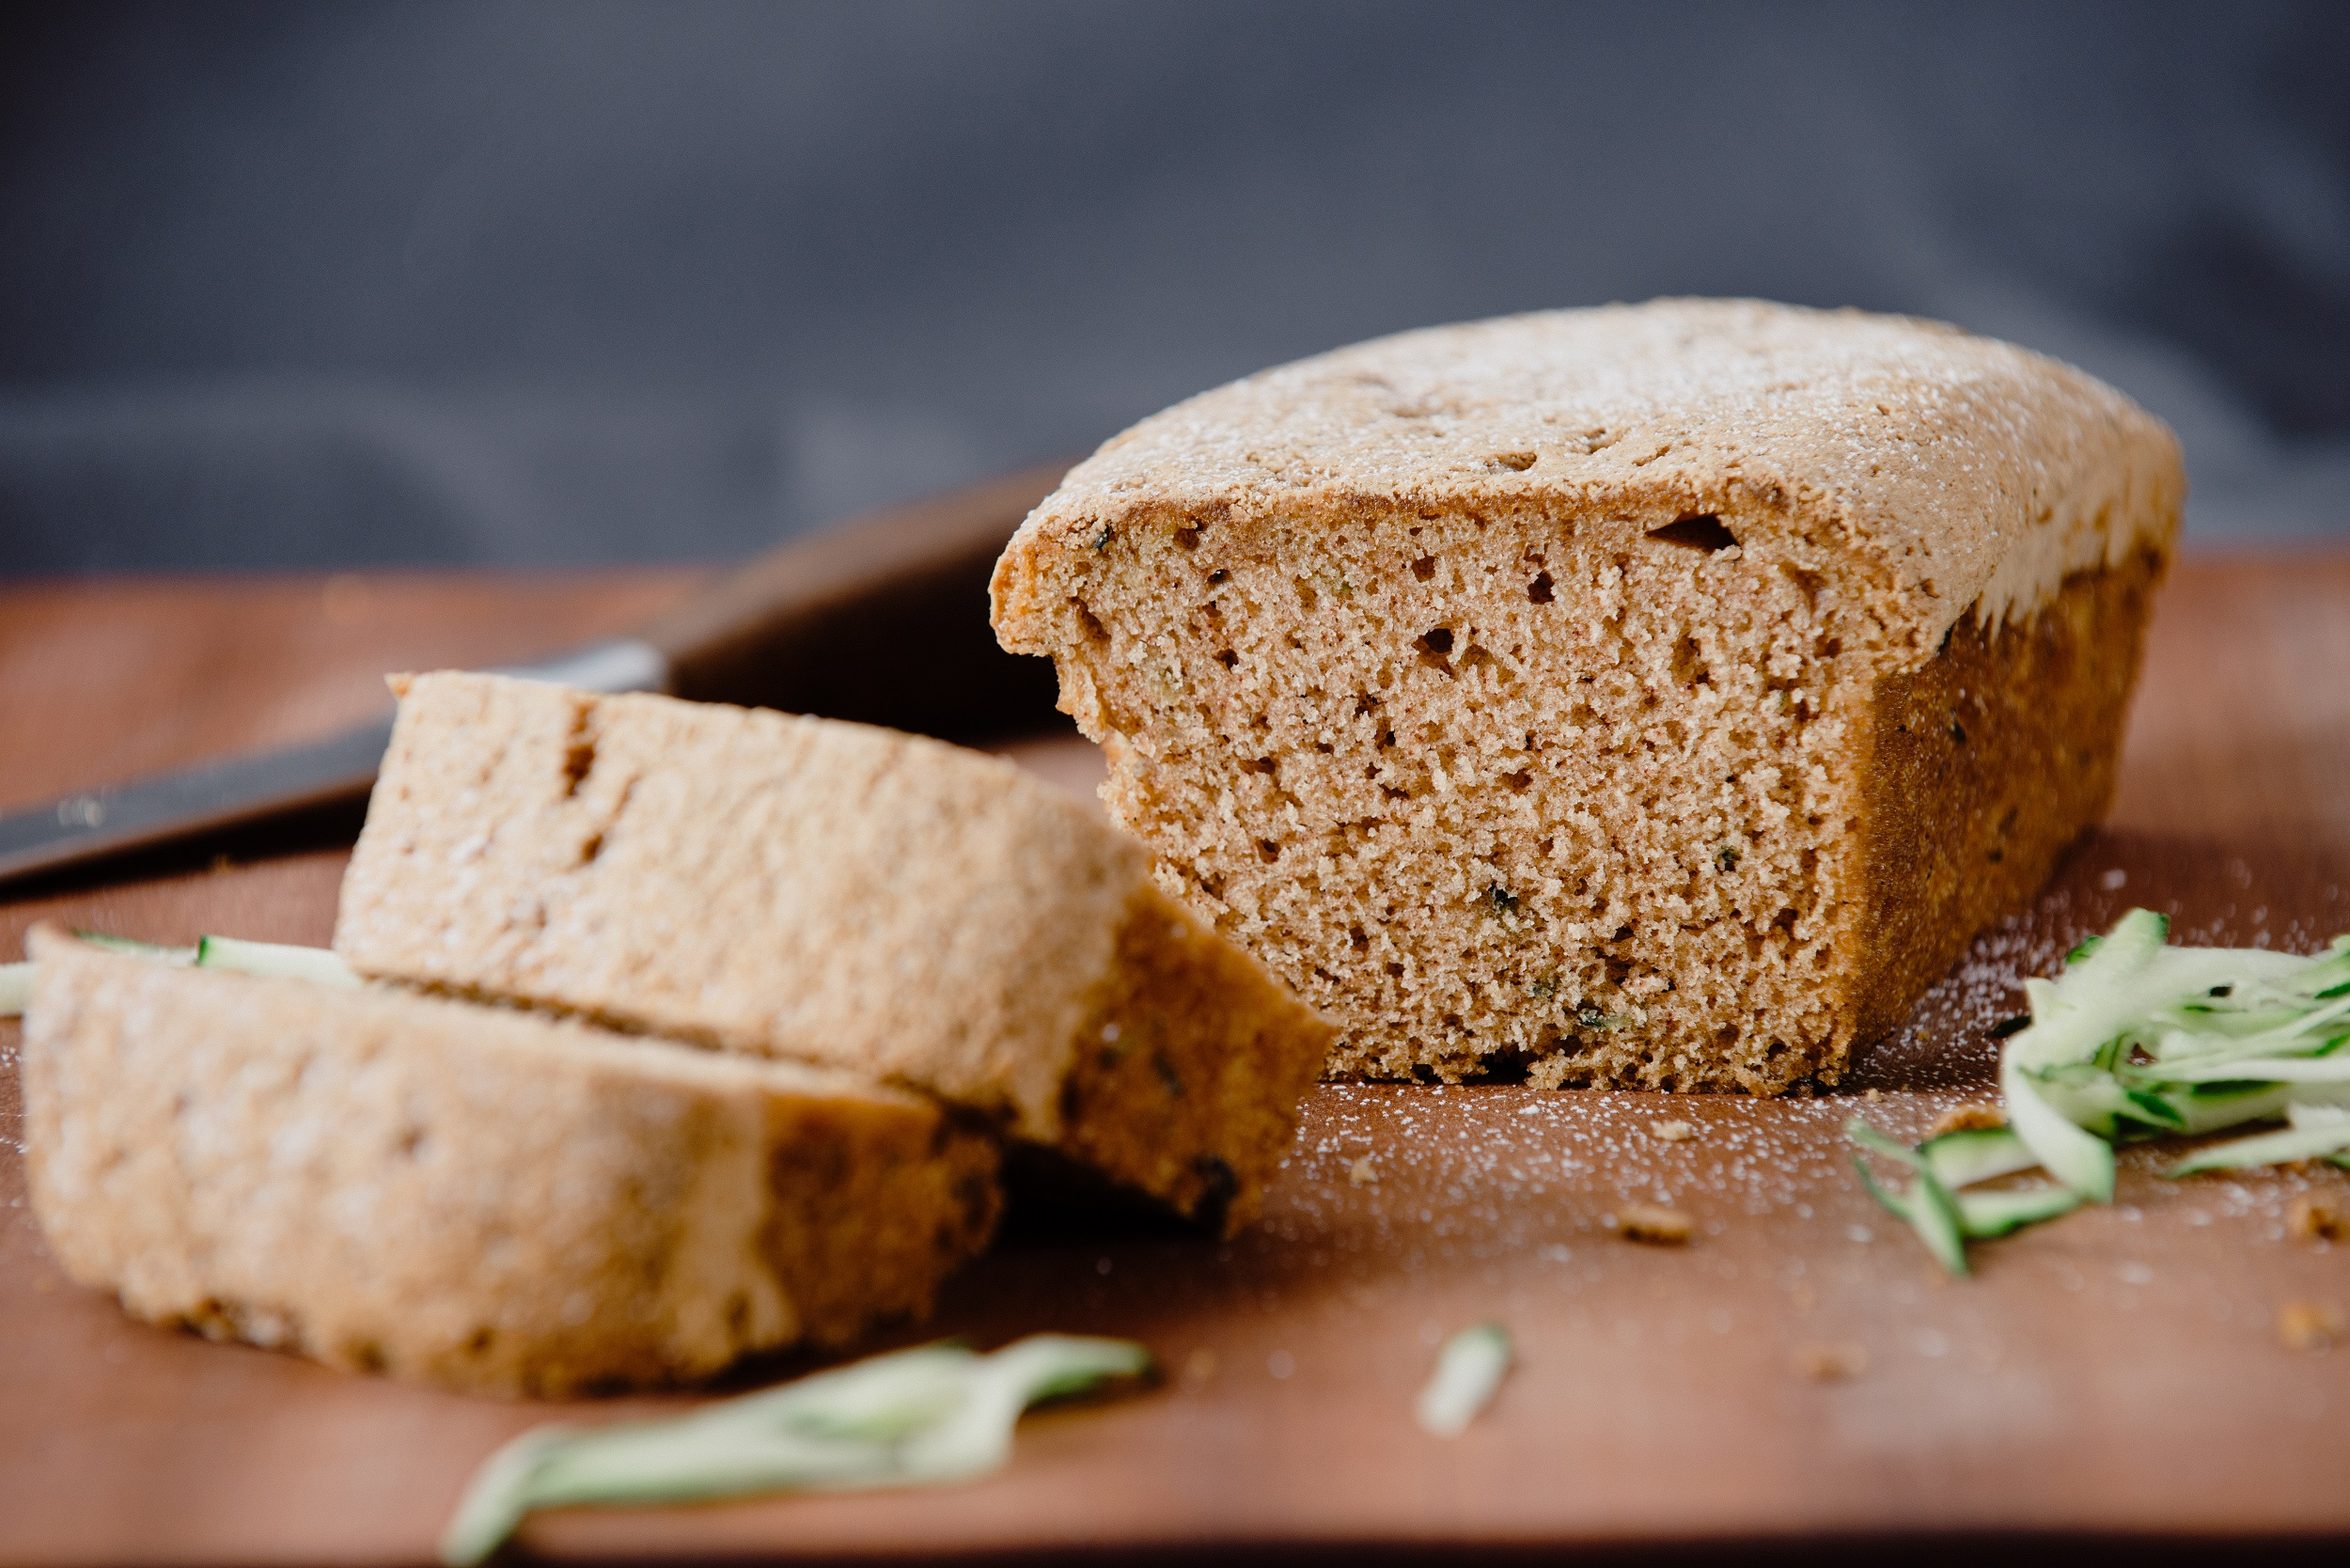 Baked by Susan Zucchini Bread